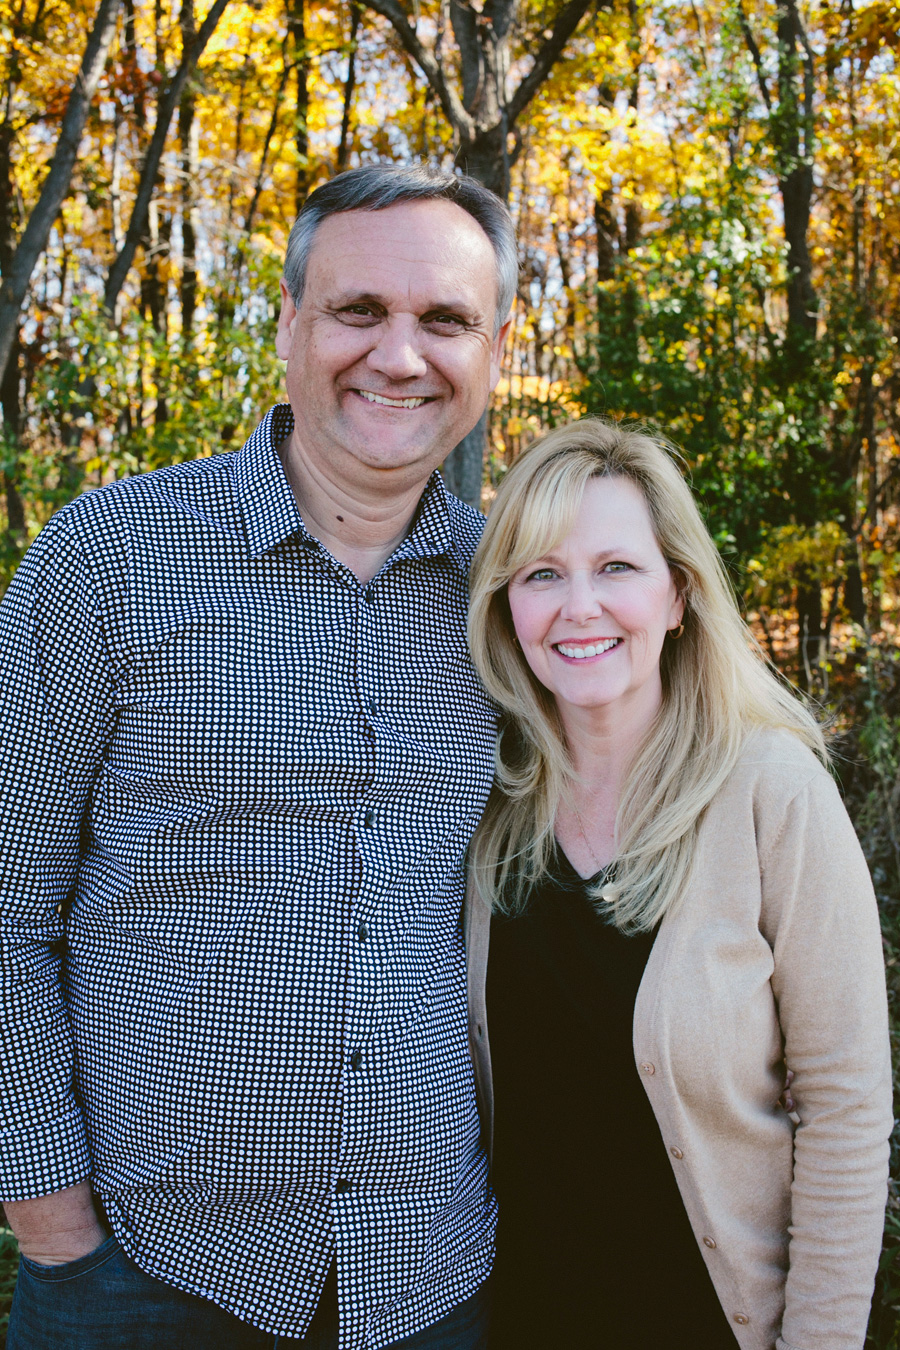 John & Tammy Pop   John and his wife Tammy live in Commerce Twp. and have three wonderful children (Crystal, Alicia, and Christian). John has a passion for prayer, and the working of the Holy Spirit in the midst of God's people. He is also the co-owner of Quality Design Services Inc, an international engineering firm he and his partner launched in 1990.